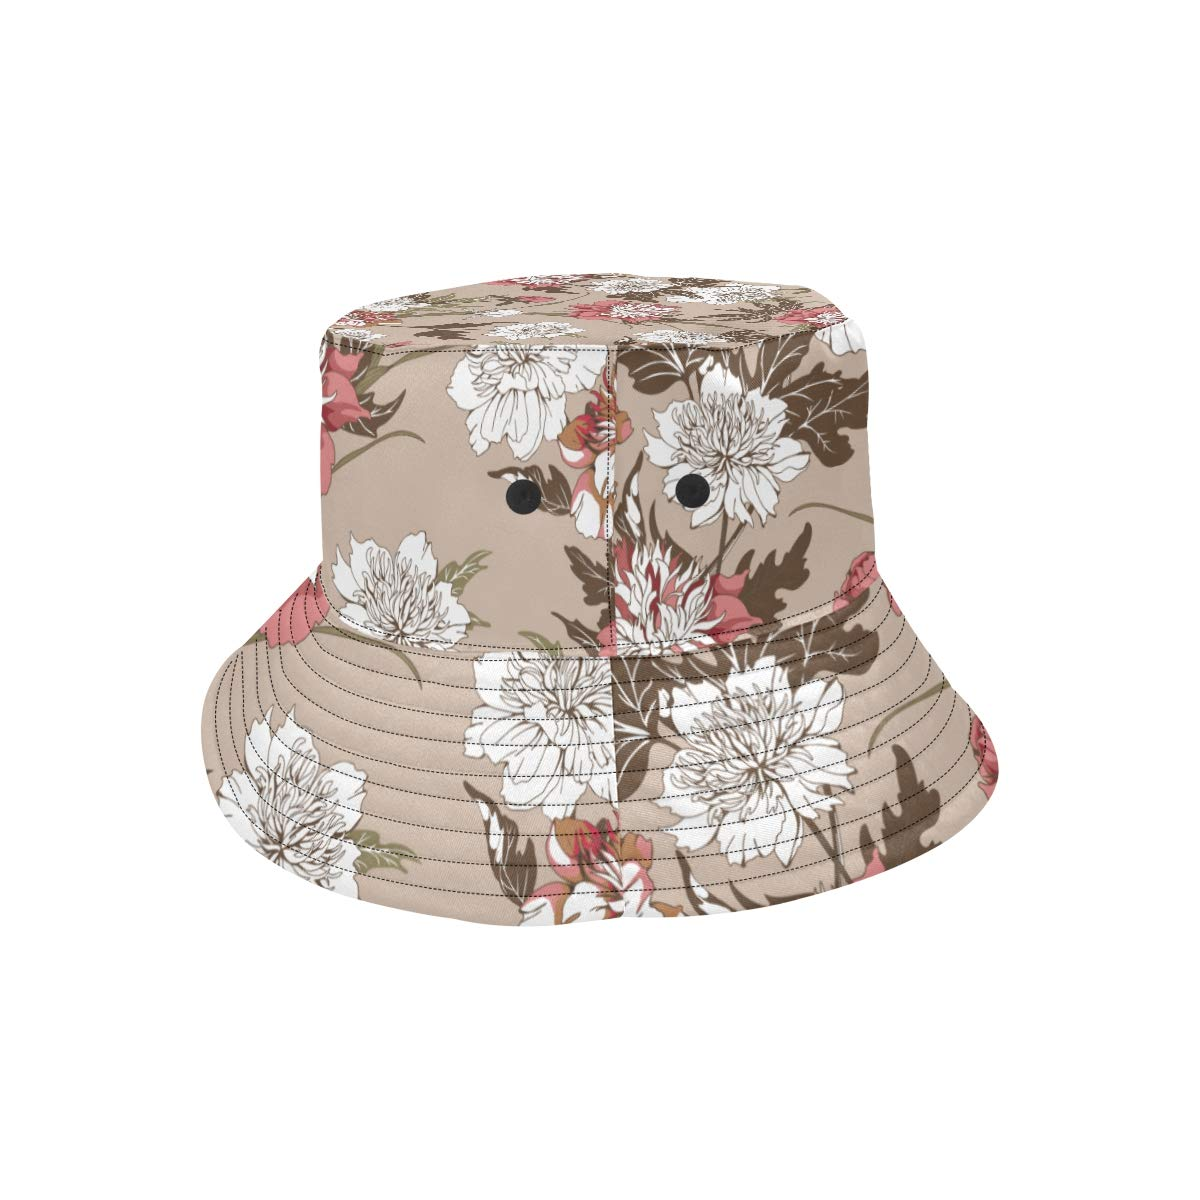 Wedding Elegant Flowers Fun New Summer Unisex Cotton Fashion Fishing Sun Bucket Hats for Kid Teens Women and Men with Customize Top Packable Fisherman Cap for Outdoor Travel